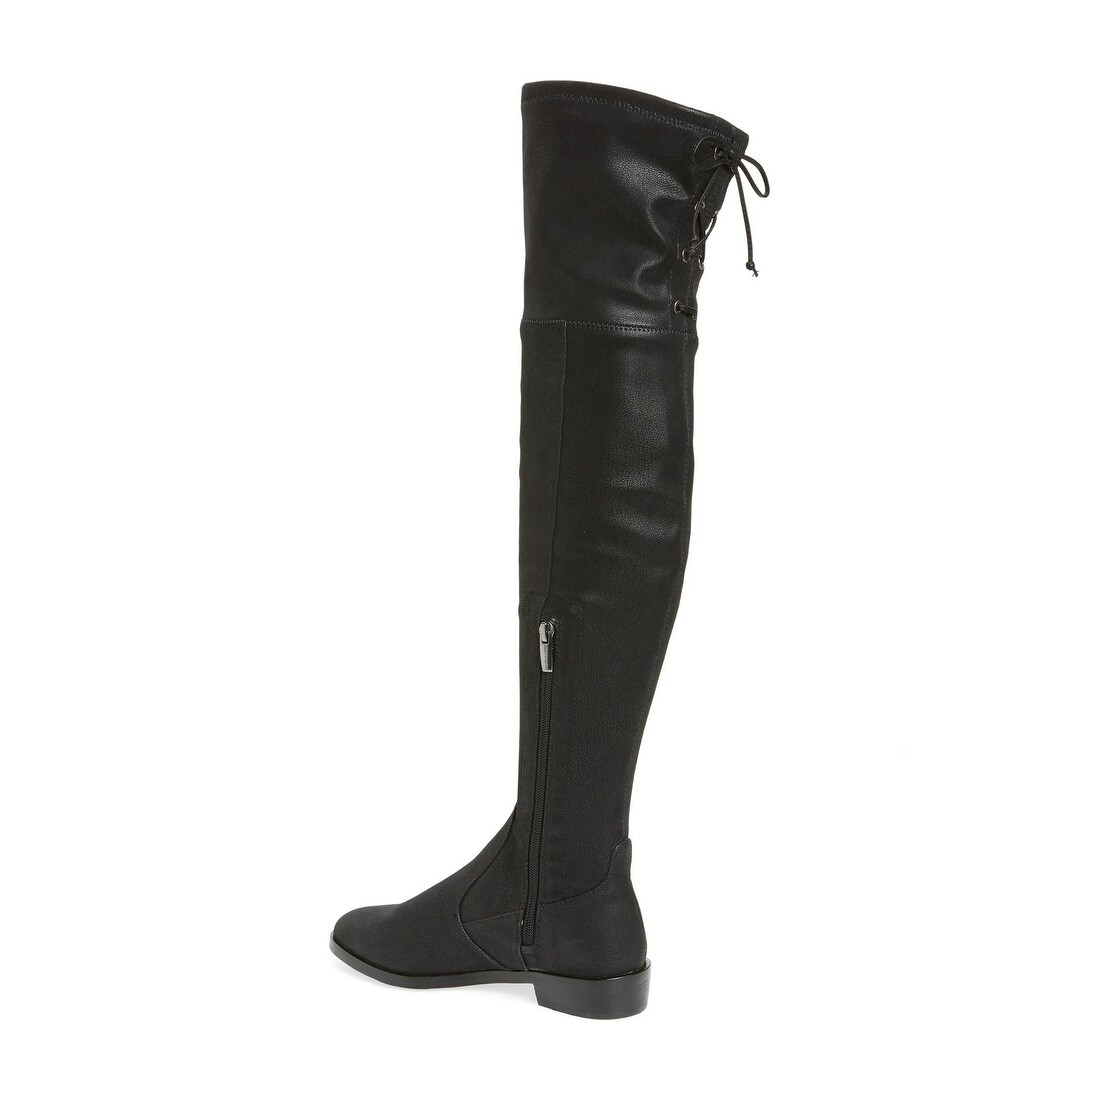 fcf9c5bc9f9 Shop Vince Camuto Womens CRISINTHA Leather Closed Toe Knee High Riding Boots  - Free Shipping Today - Overstock - 16622884